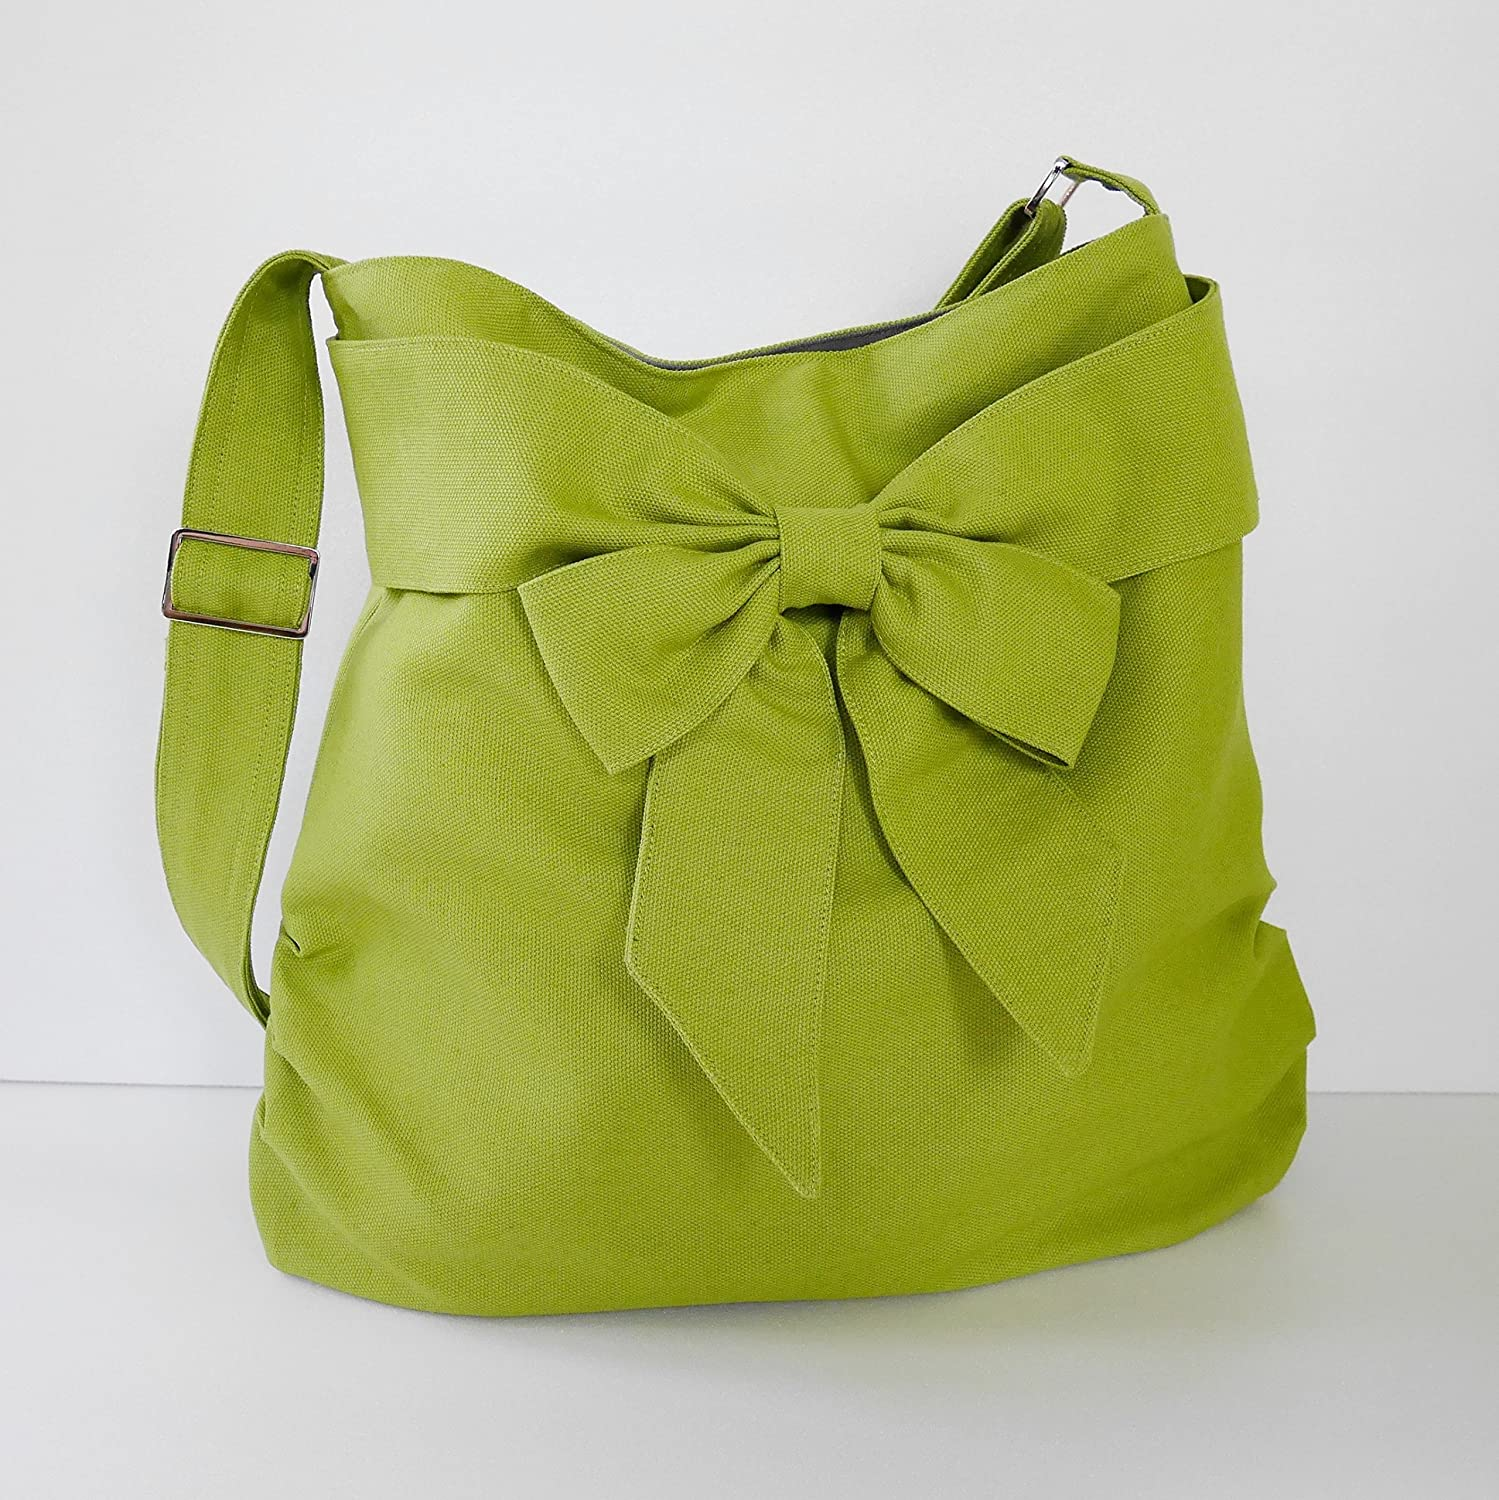 Virine pear green shoulder bag, cross body bag, messenger bag, everyday bag, handbag, travel bag, tote, bow, women - JENNIFER